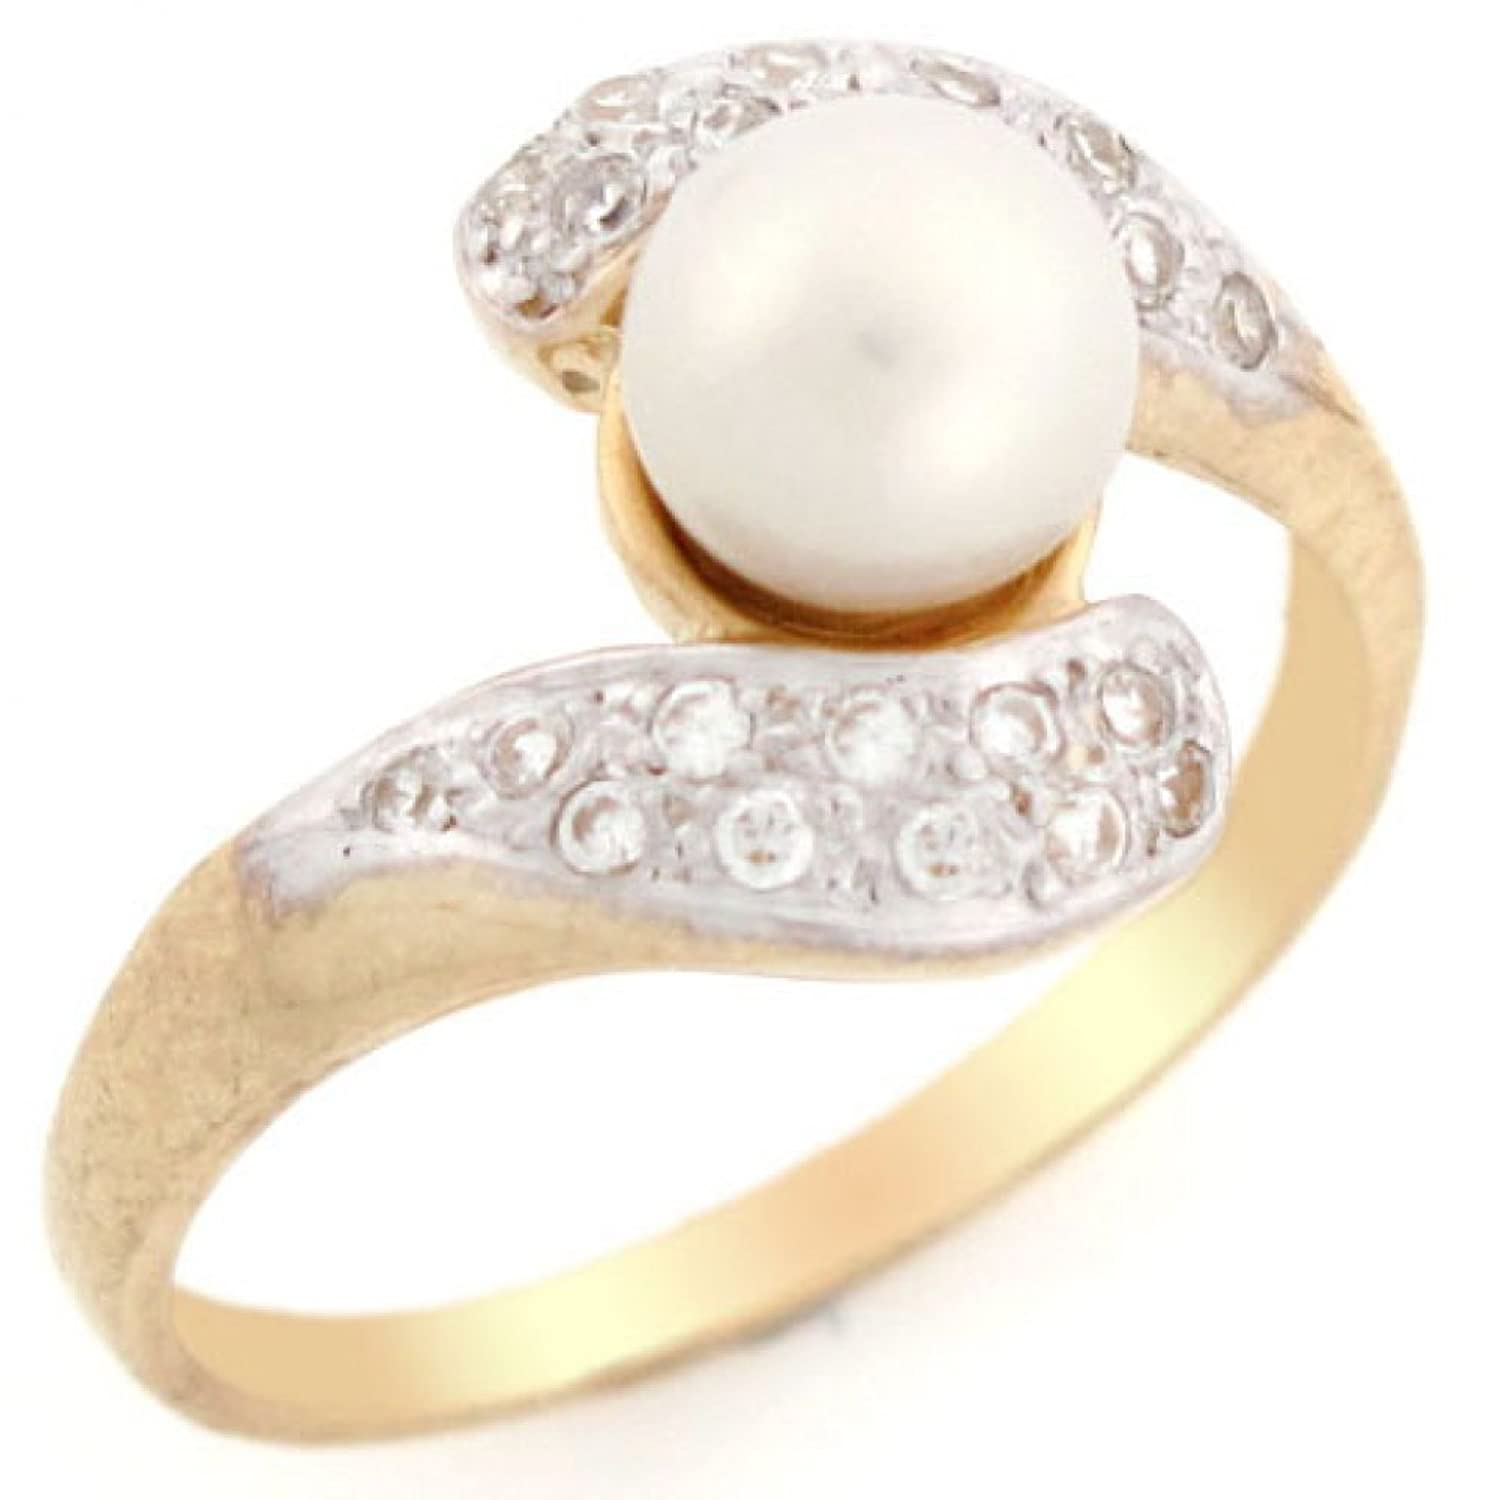 10k Solid Yellow Gold CZ Freshwater Cultured Pearl Perfect for Day & Evening Ring Jewelry